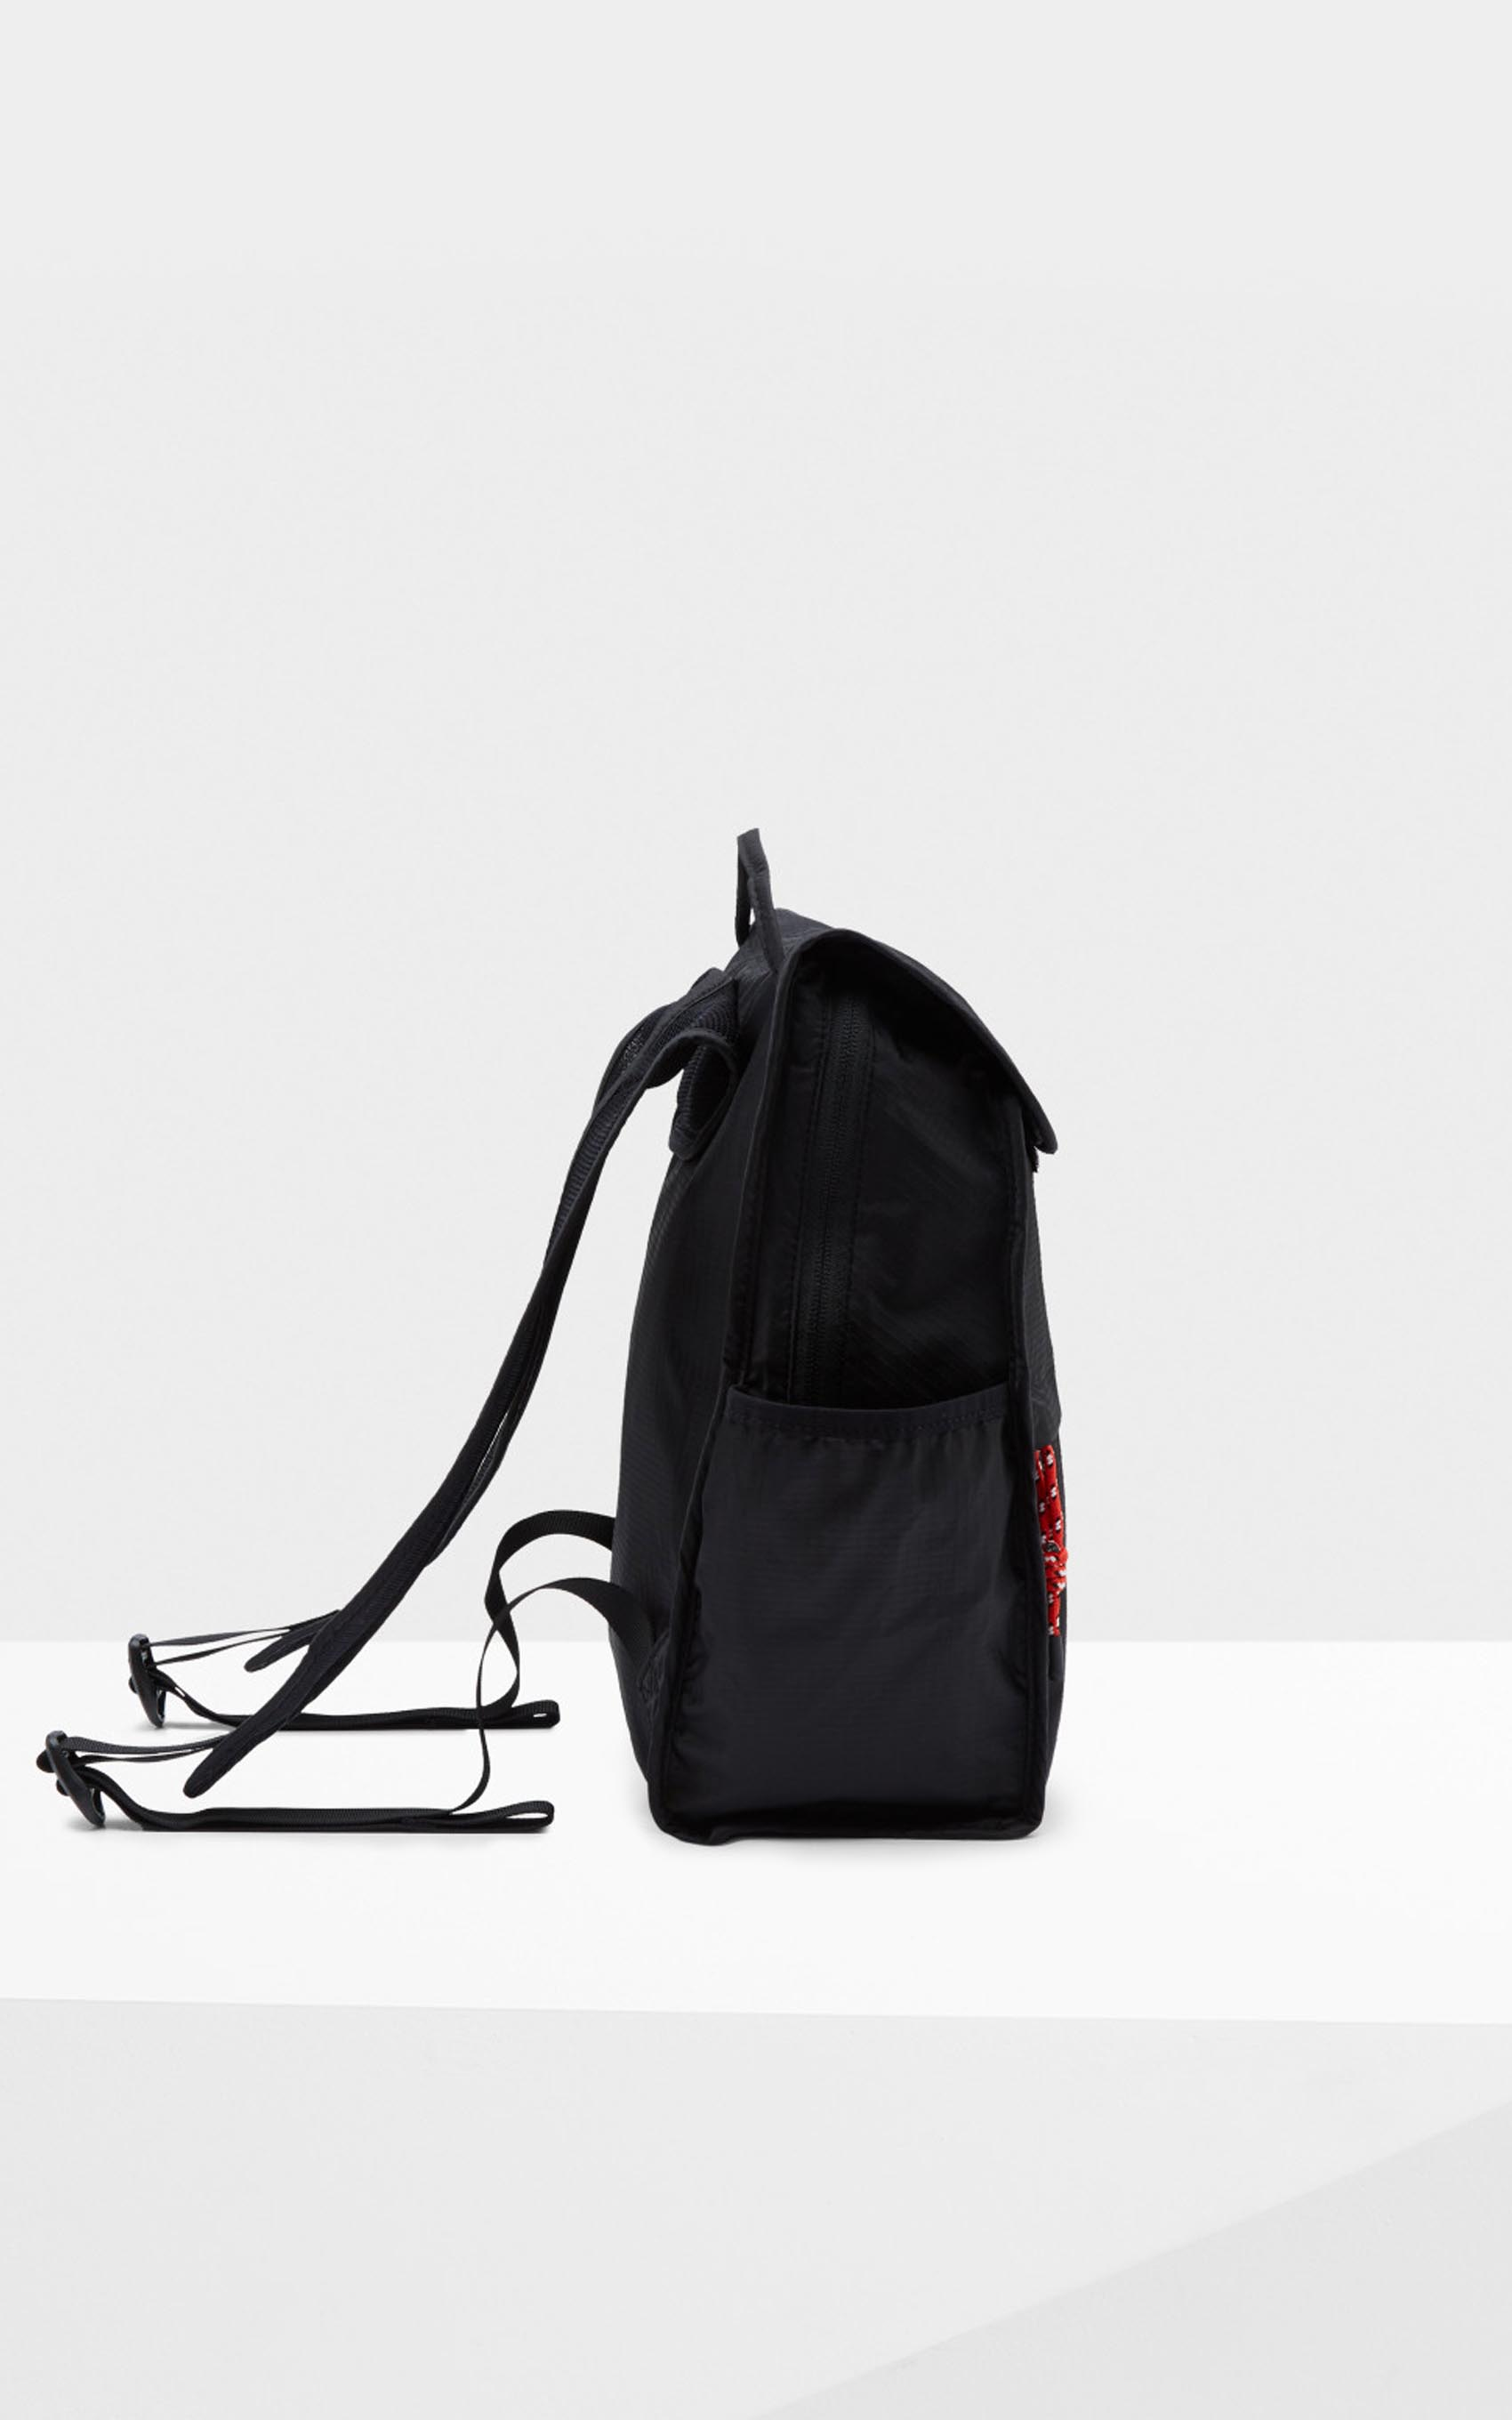 paula_hunter-original-packable-backpack_42-26-2018__picture-17483